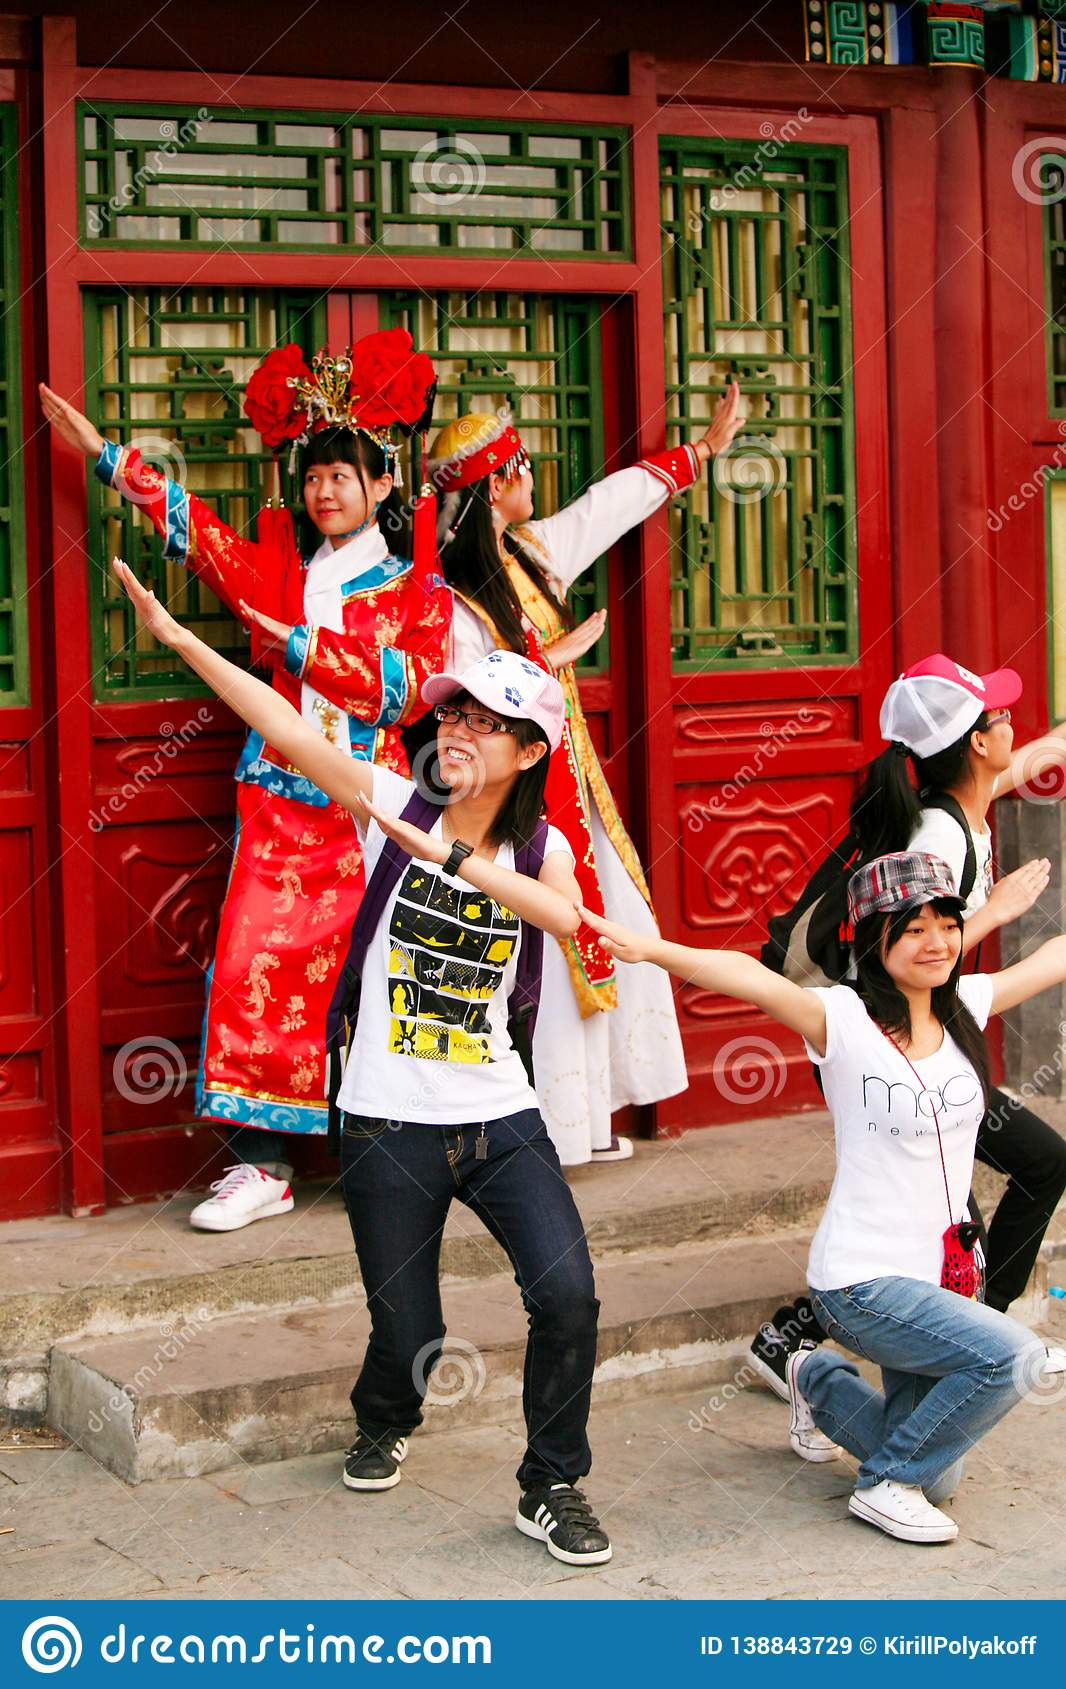 Beijing China - June 7, 2018: Chinese tourists in national costumes are photographed at the pavilion in the Forbidden City.